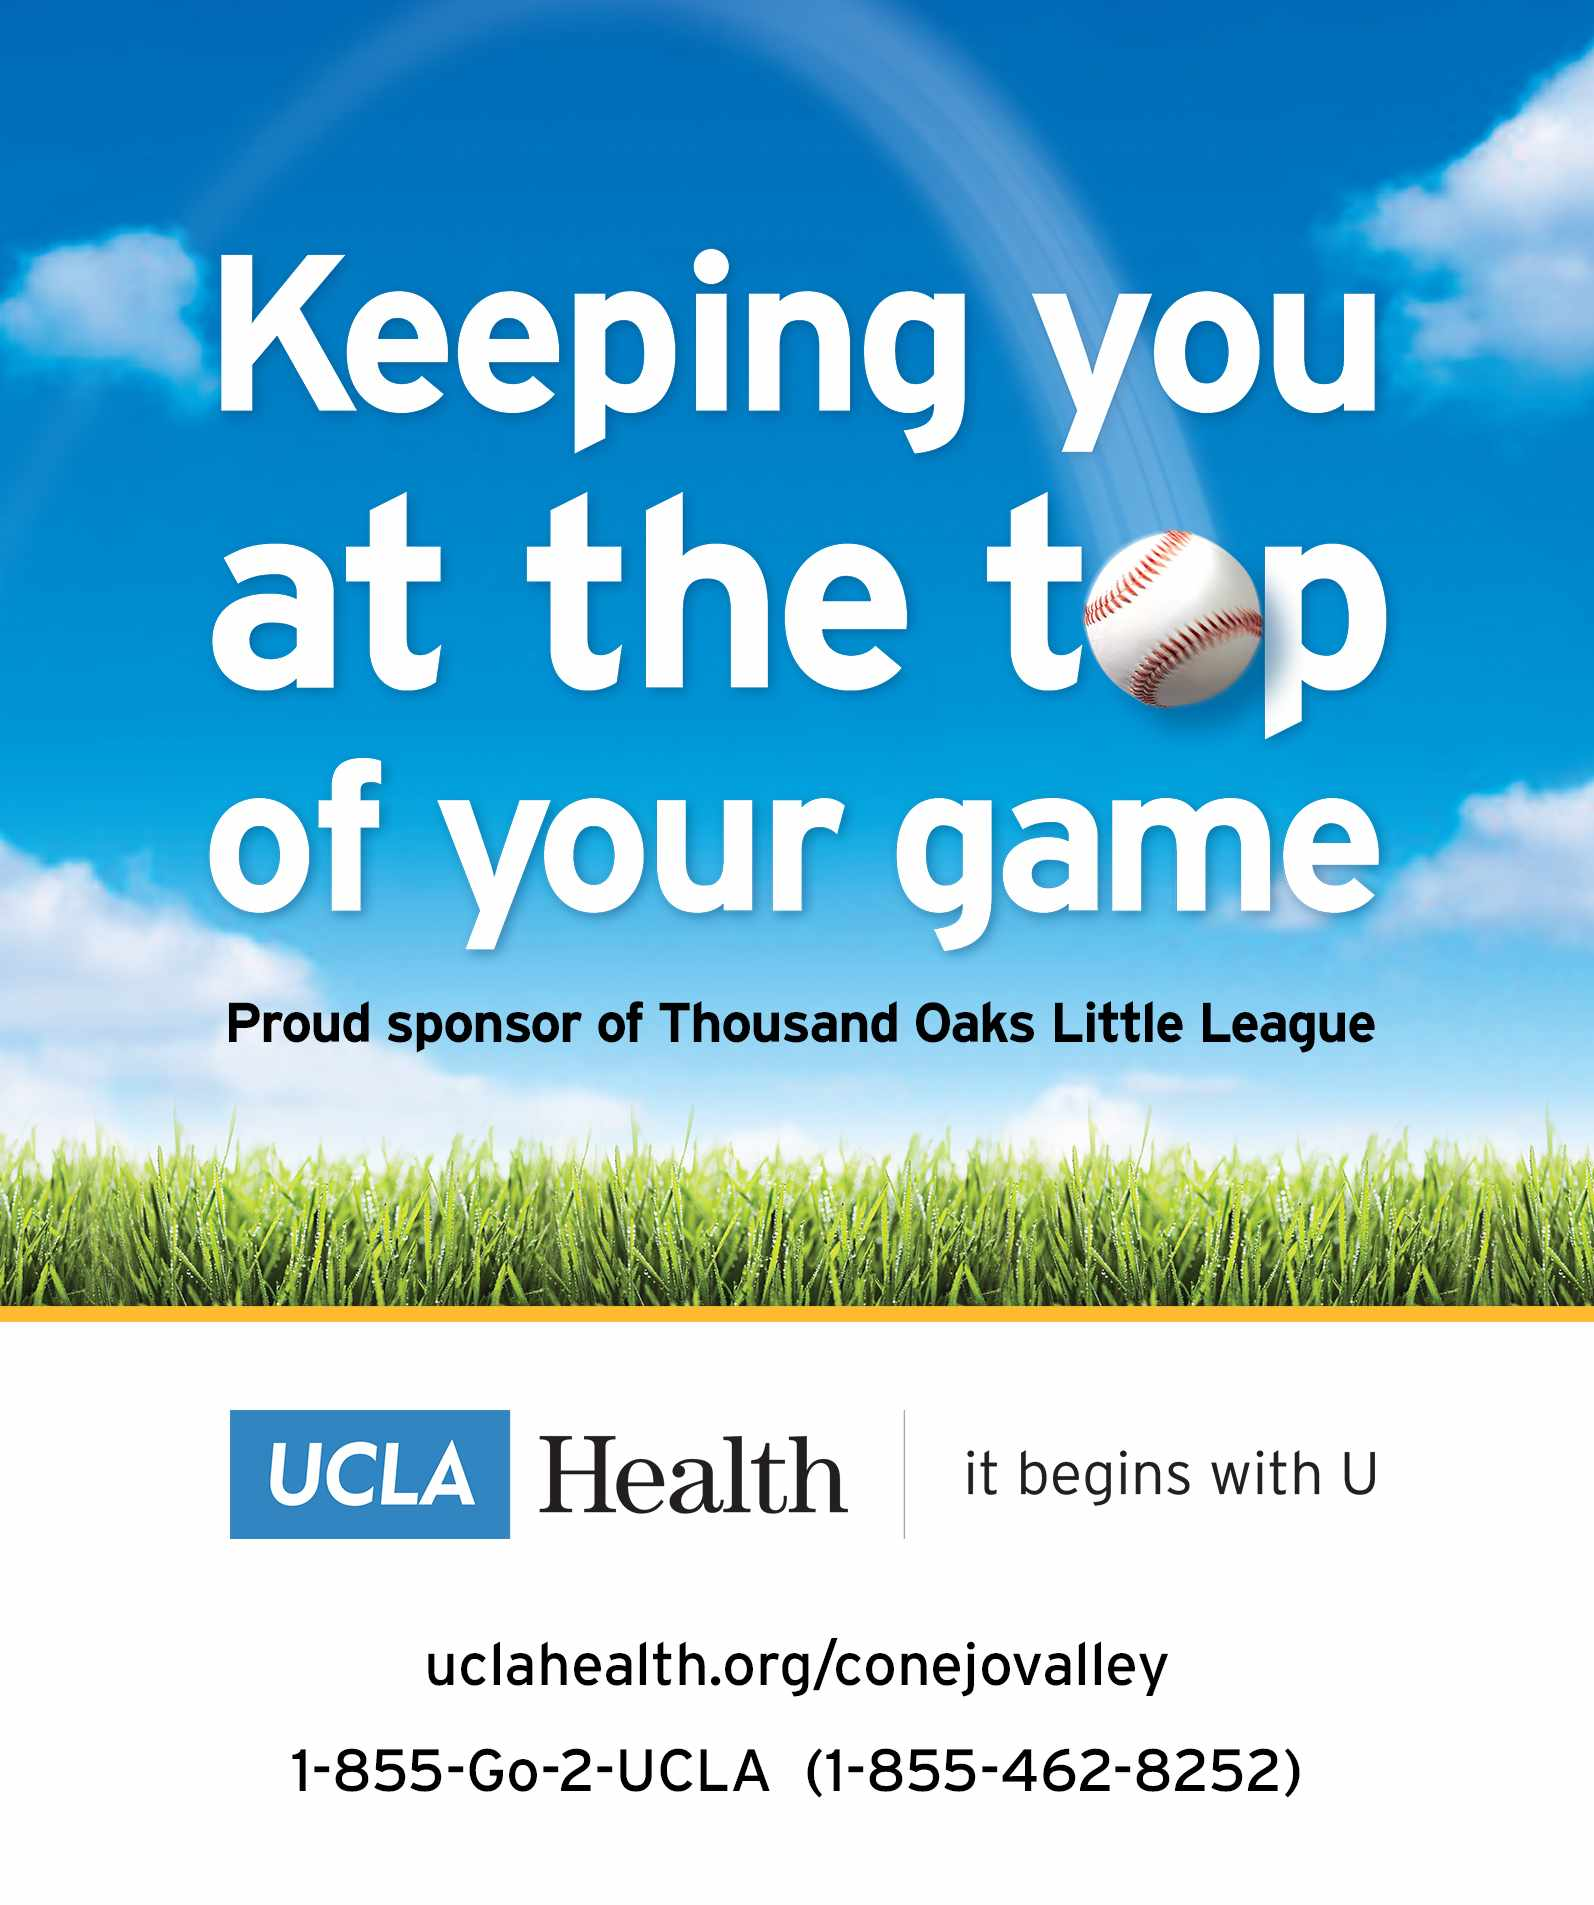 UCLA Health 2013